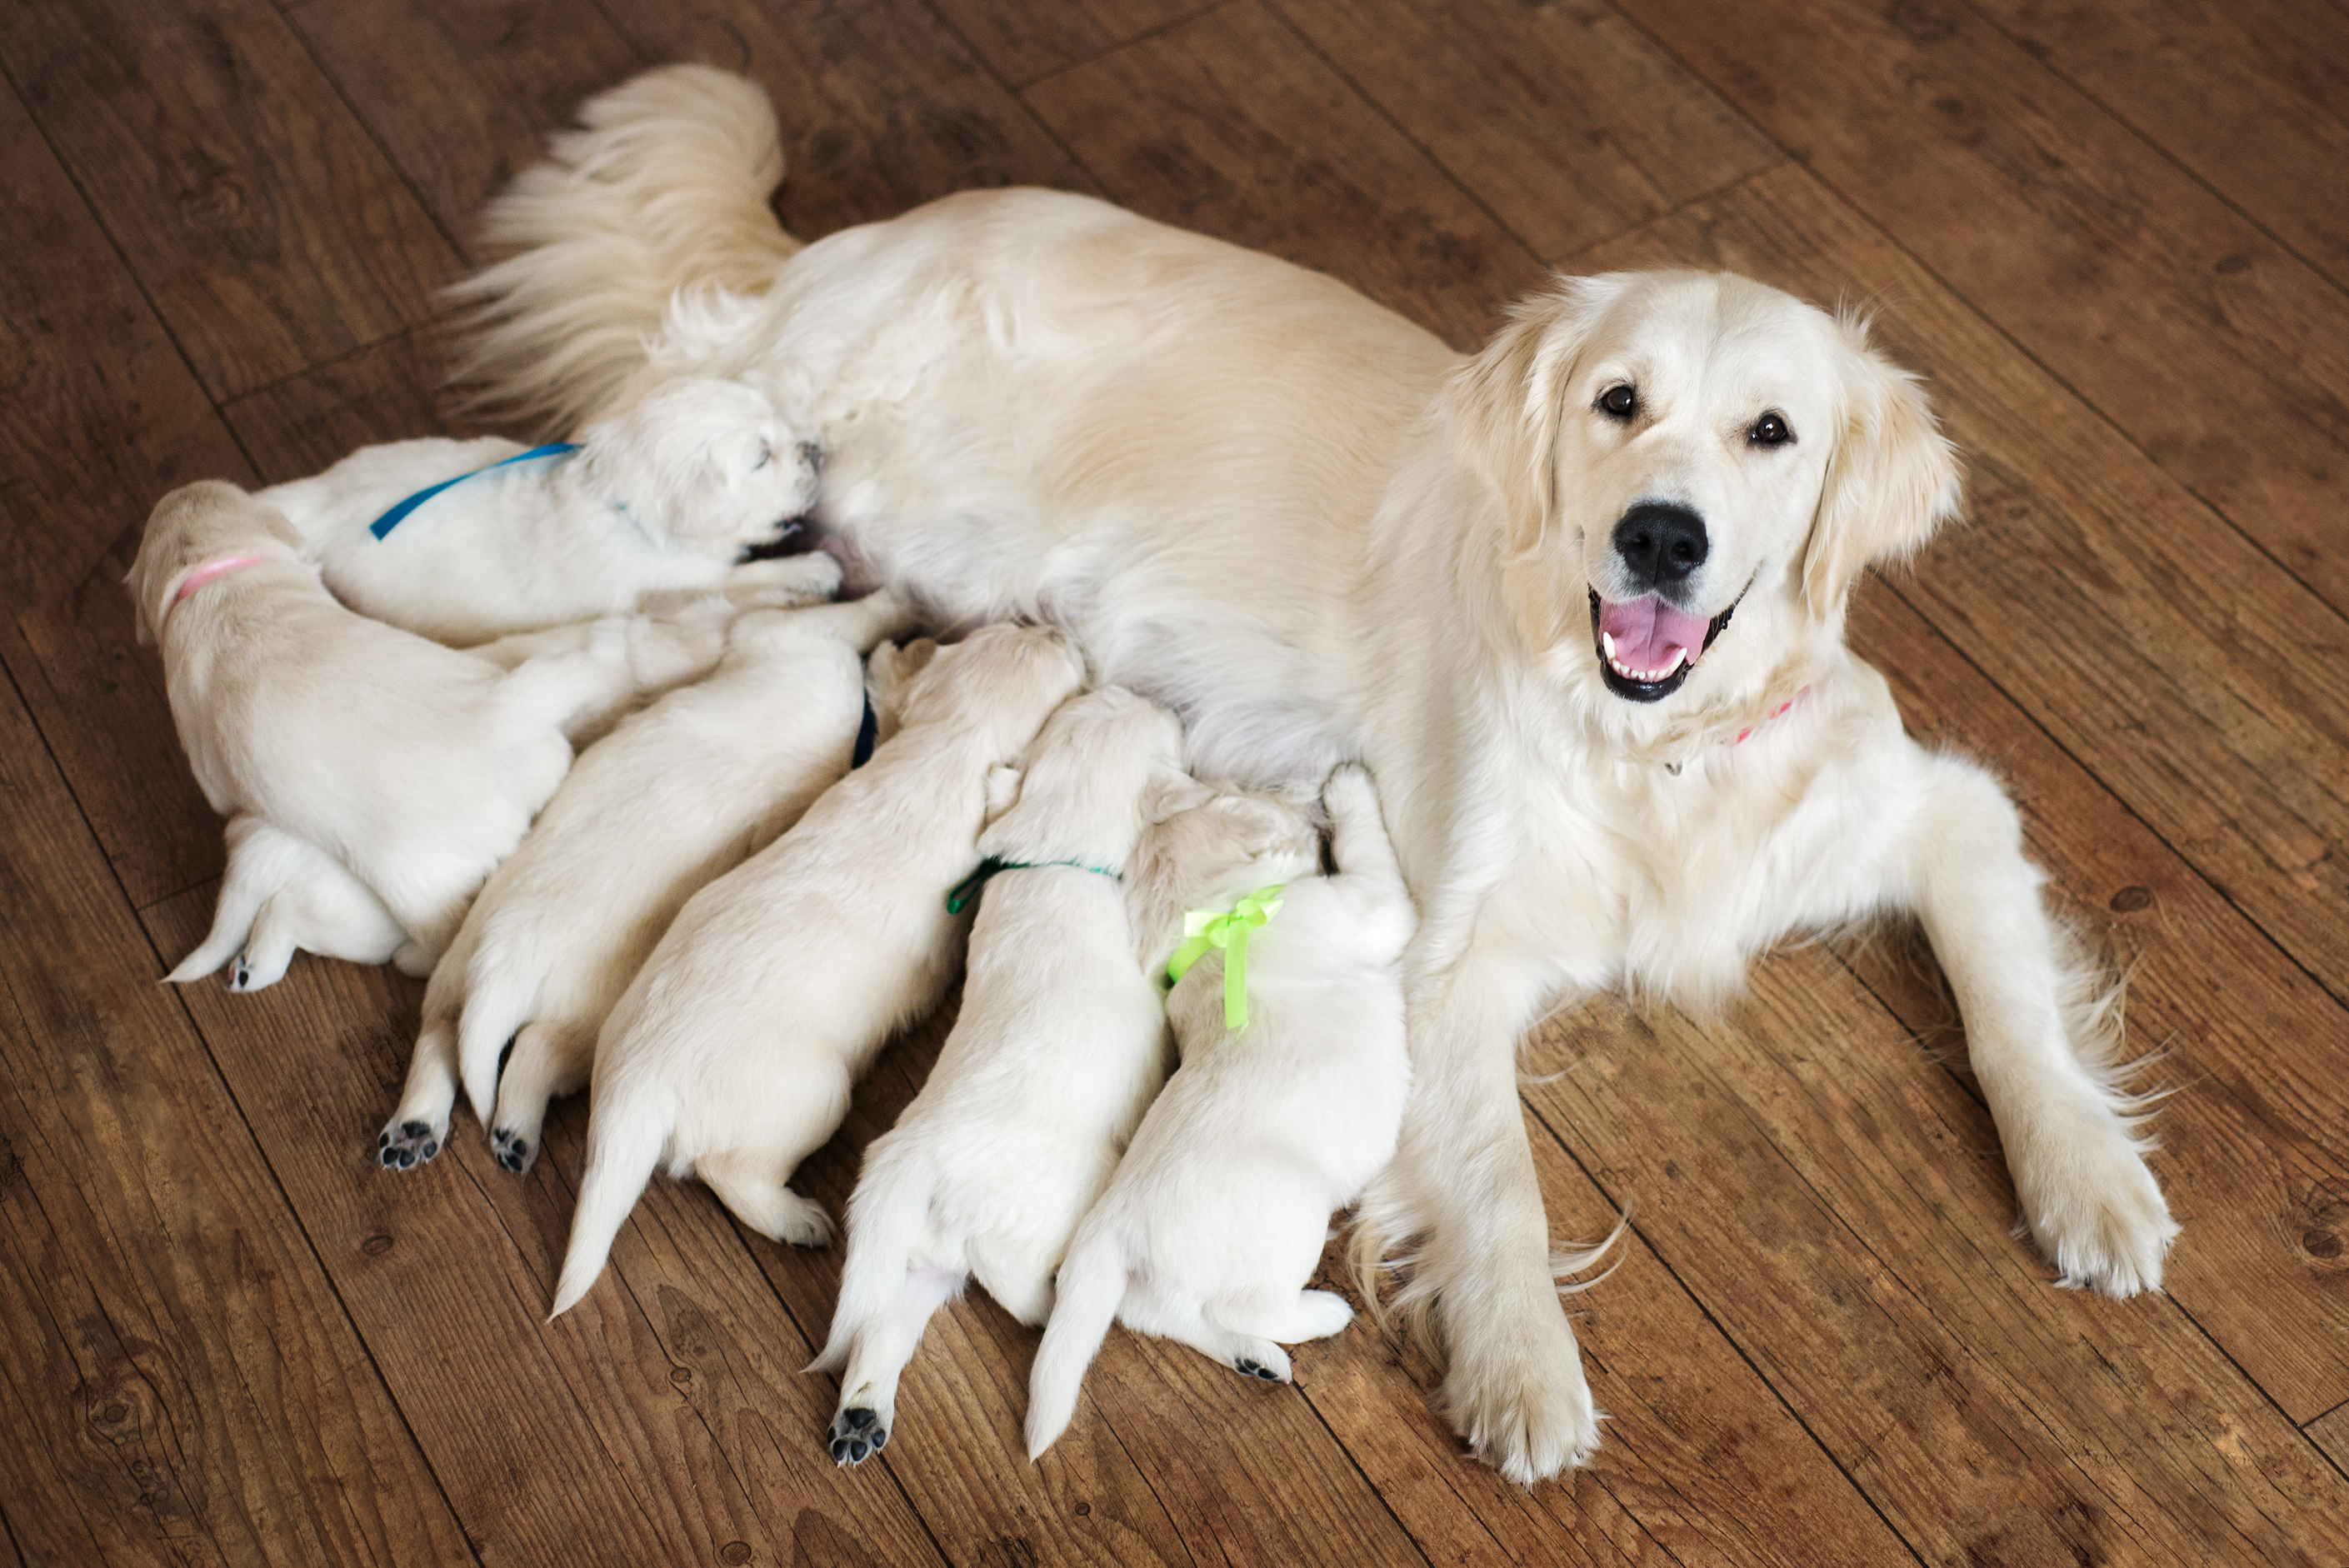 How to Choose a Dog Breeder When Looking For a Puppy